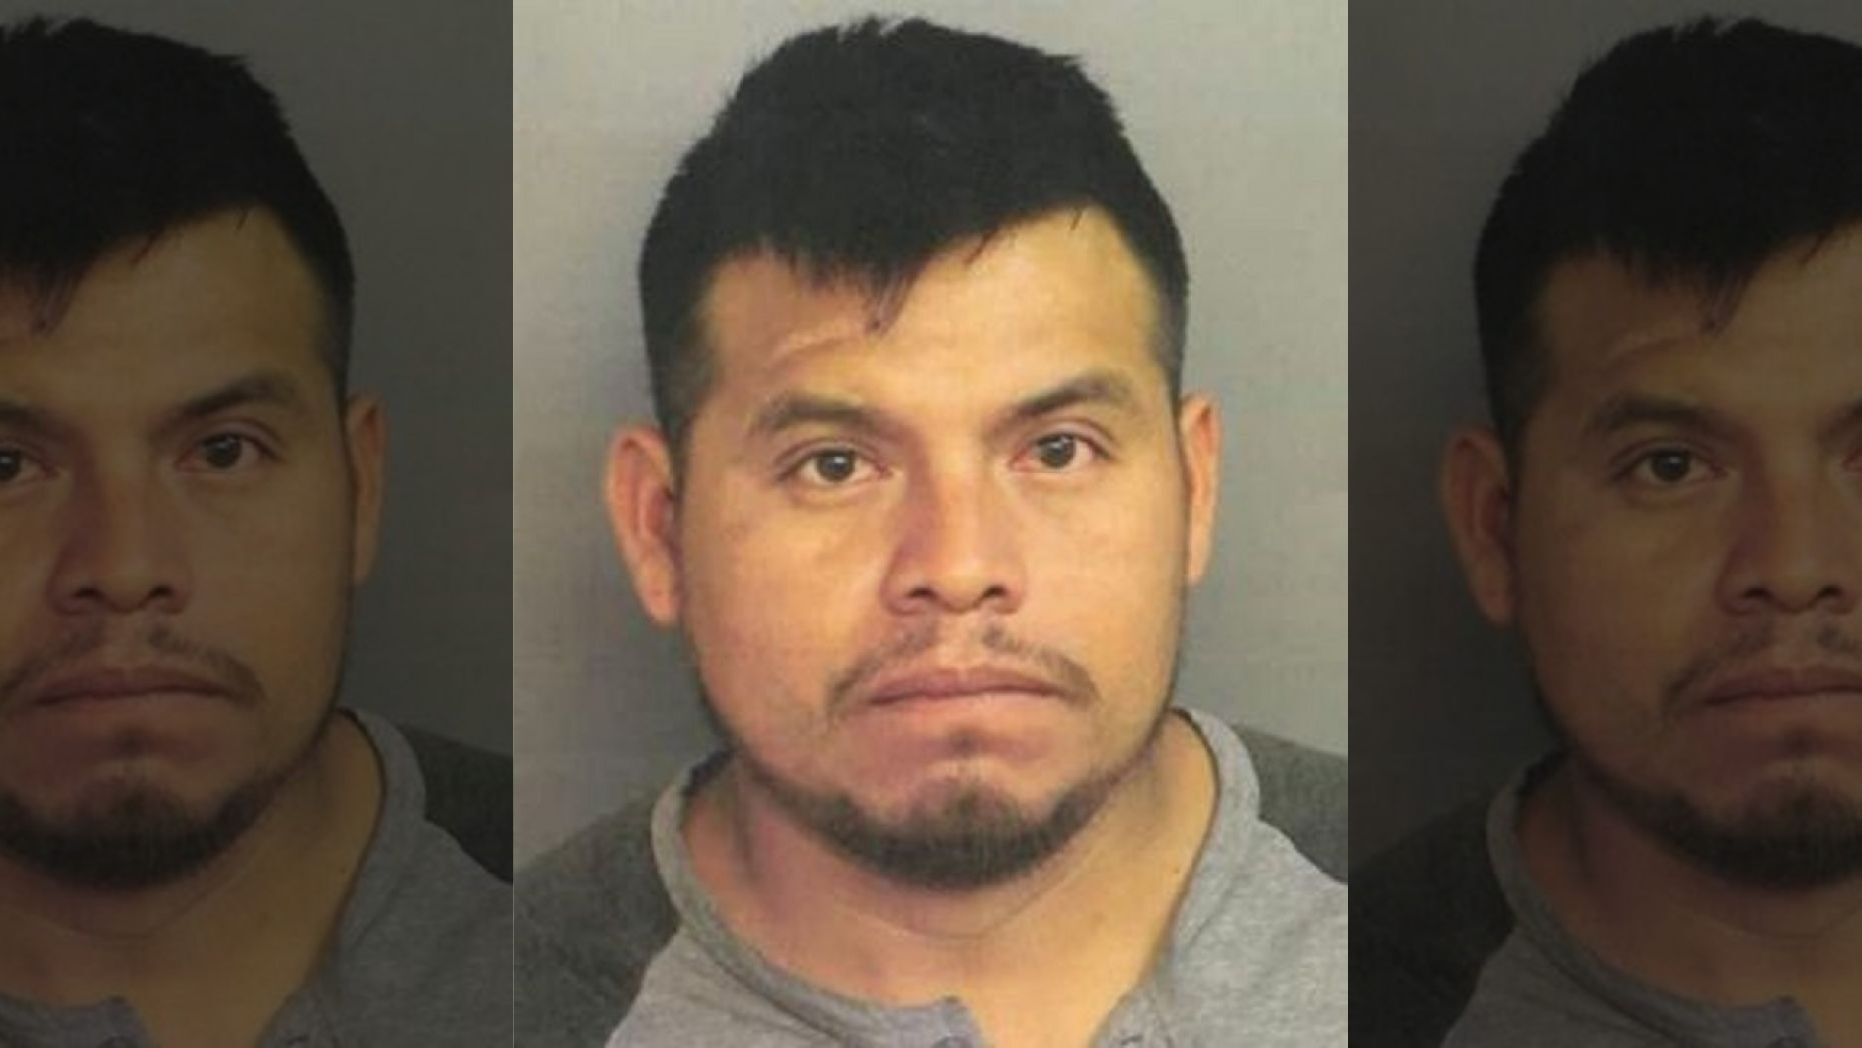 Pennsylvania authorities said Nemias Perez Severiano, 31, was living in the U.S. illegally when he struck and killed a Marine Vietnam veteran with his vehicle earlier this month.